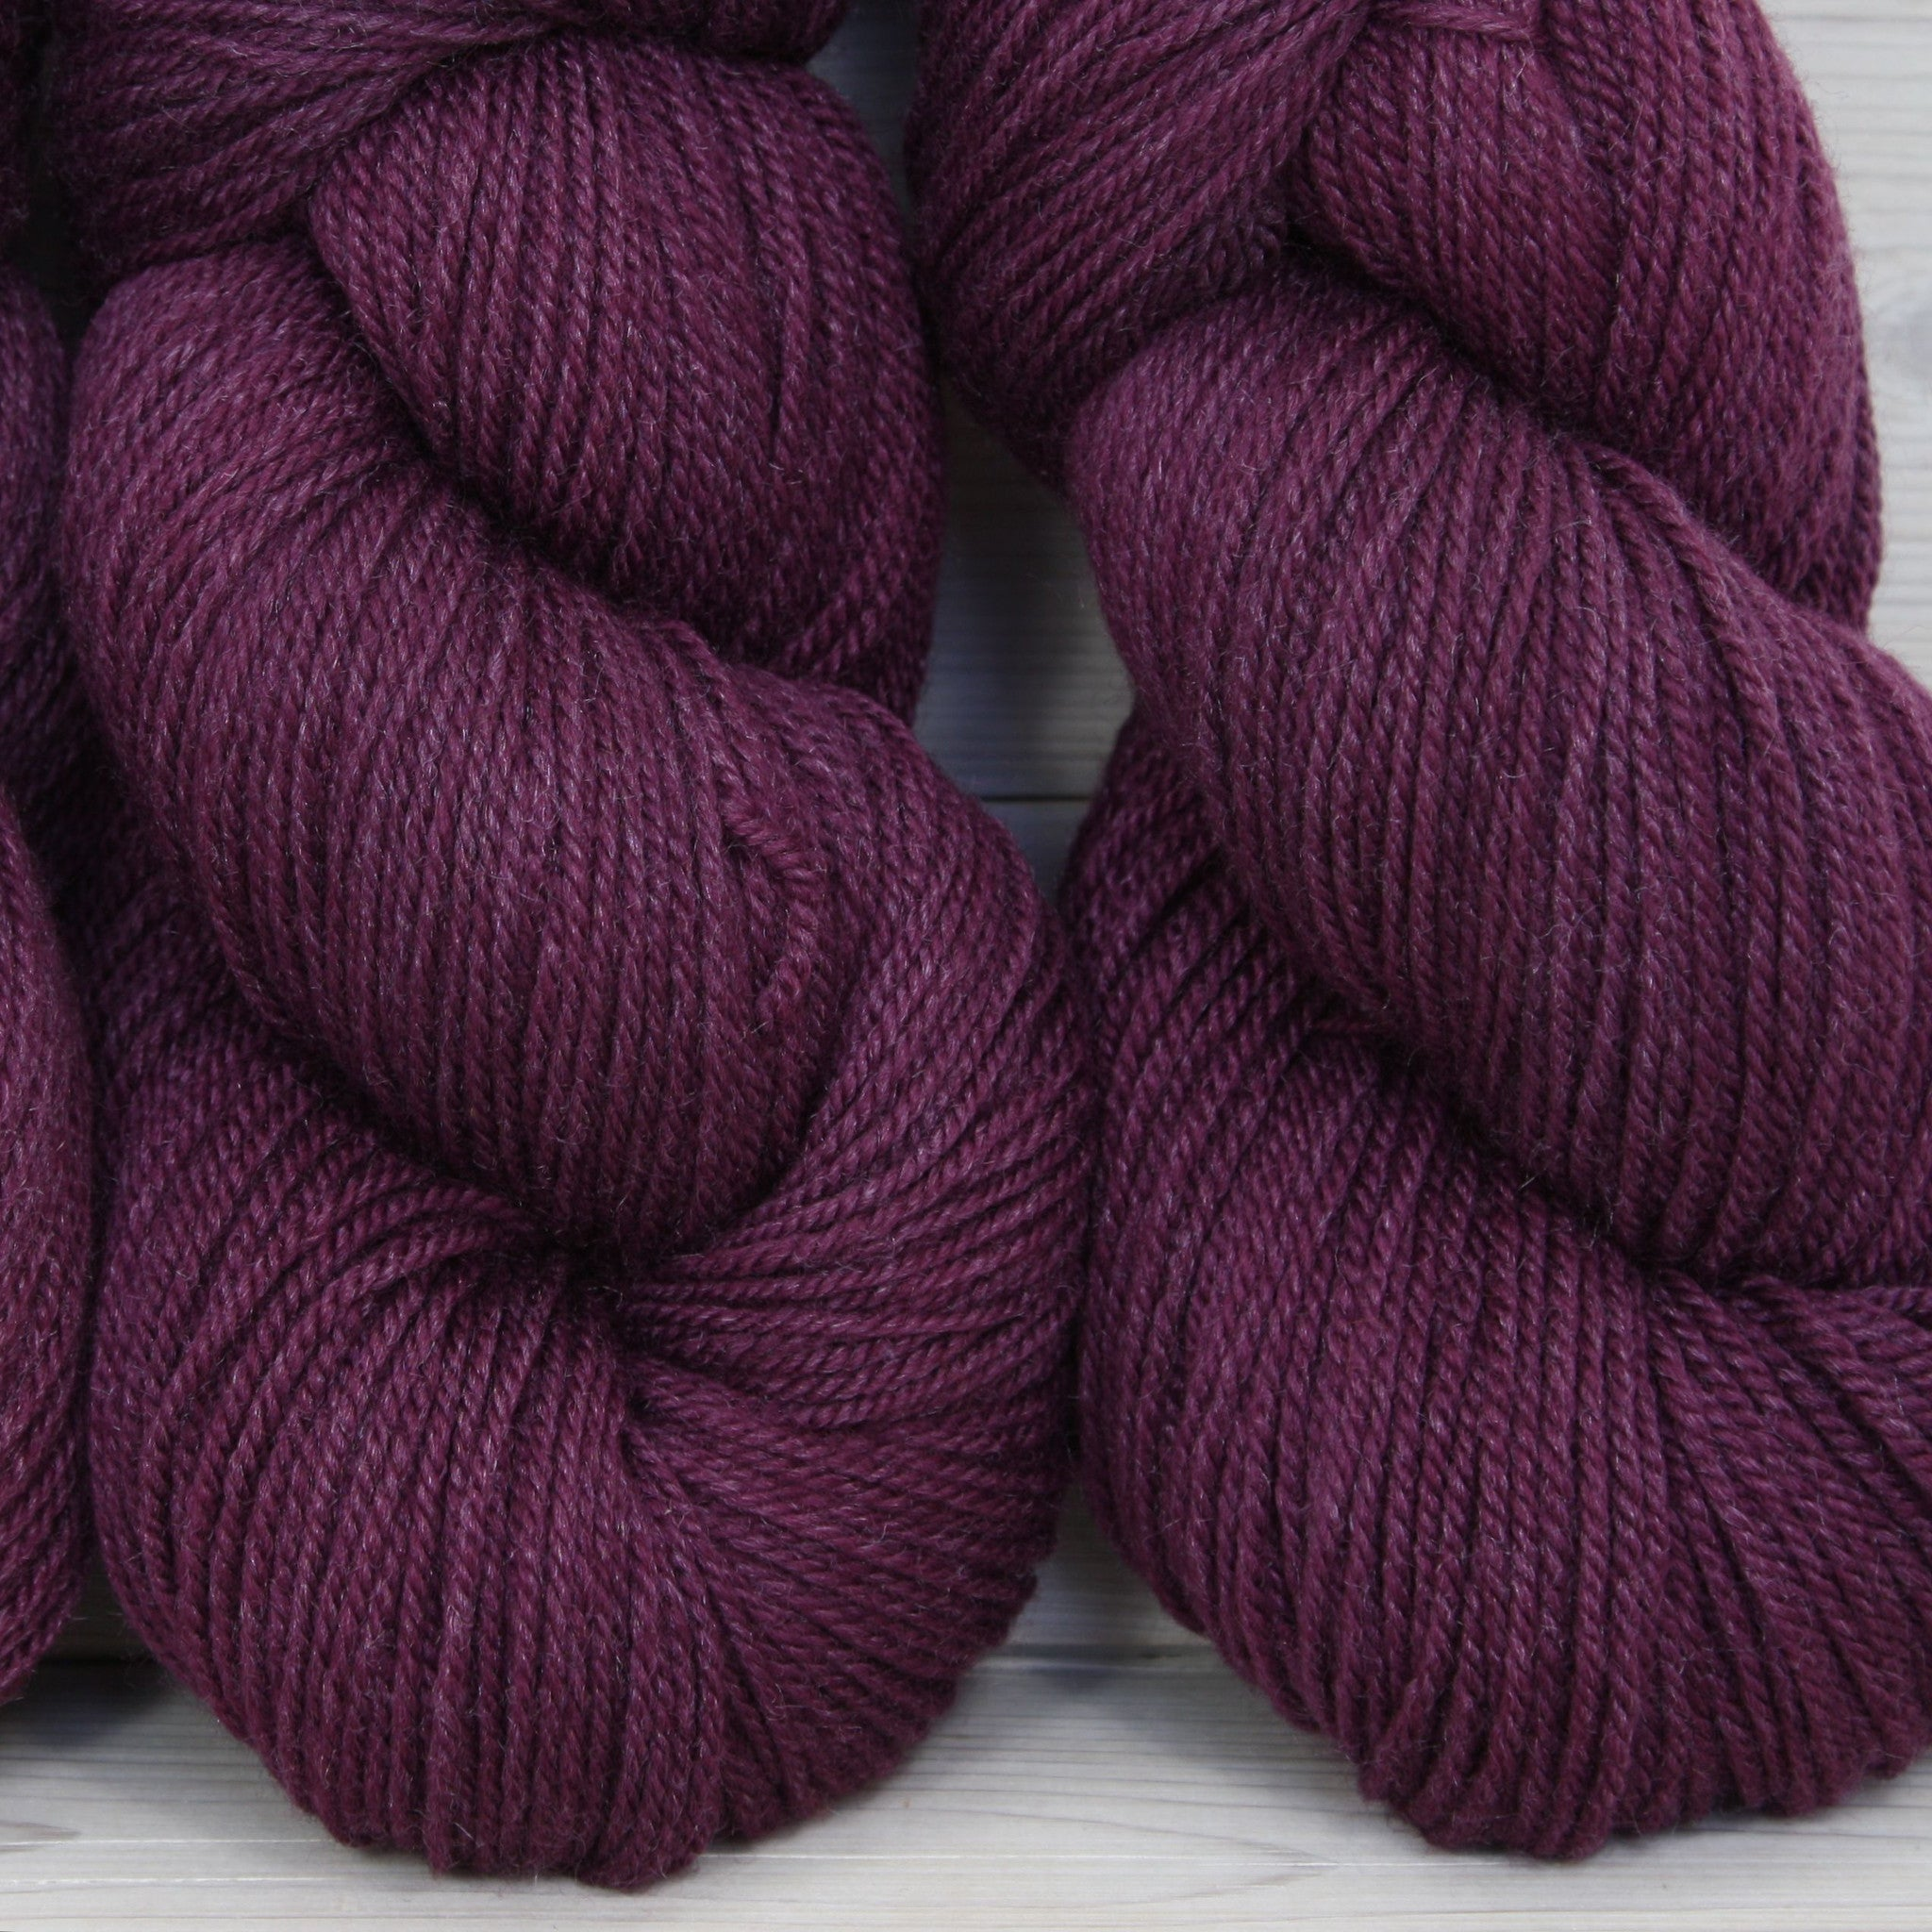 Zeta Yarn | Colorway: Eggplant | Overstock